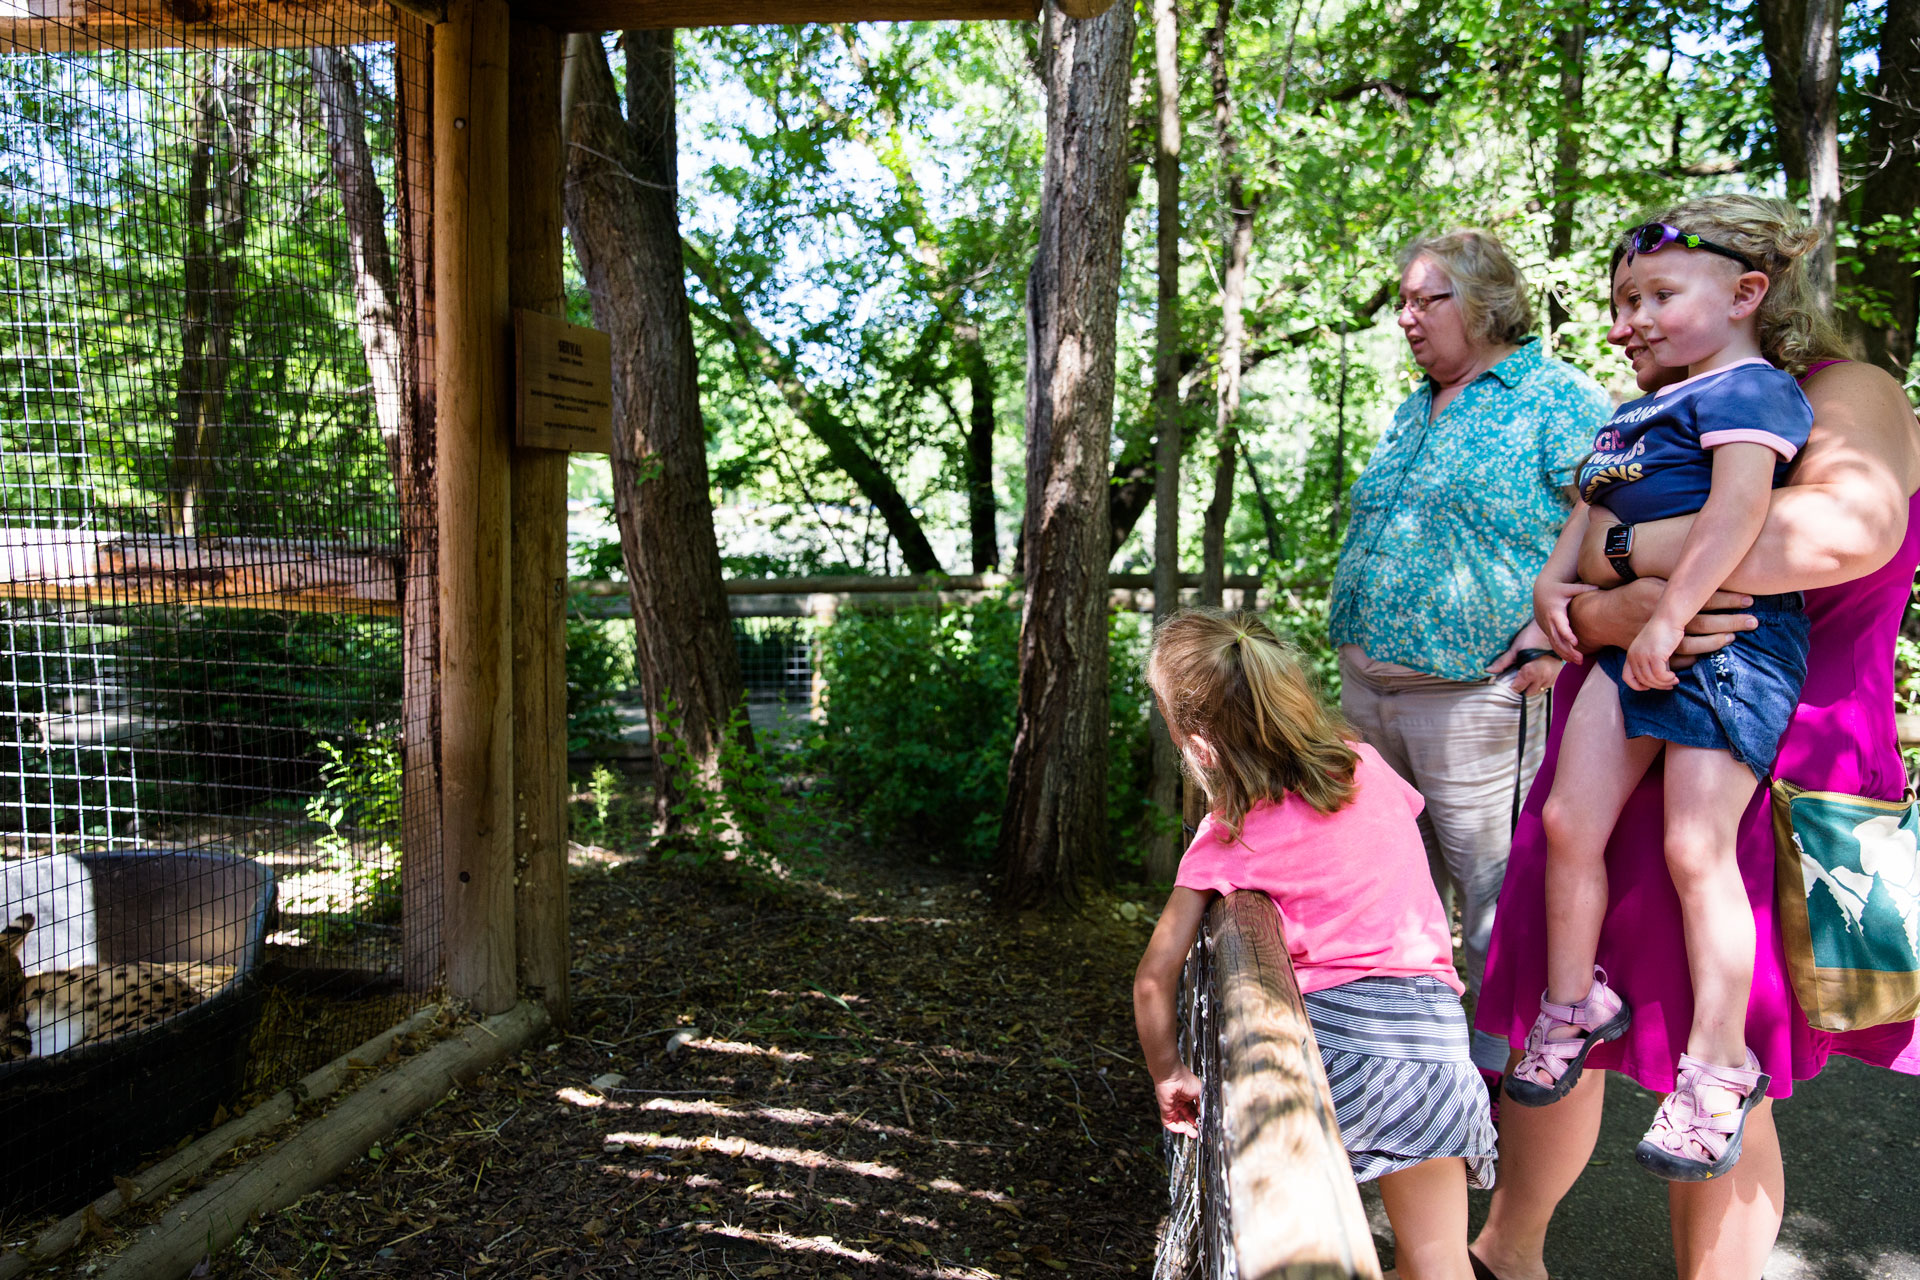 small family looking at the zoo exhibit with grandma from behind the fence